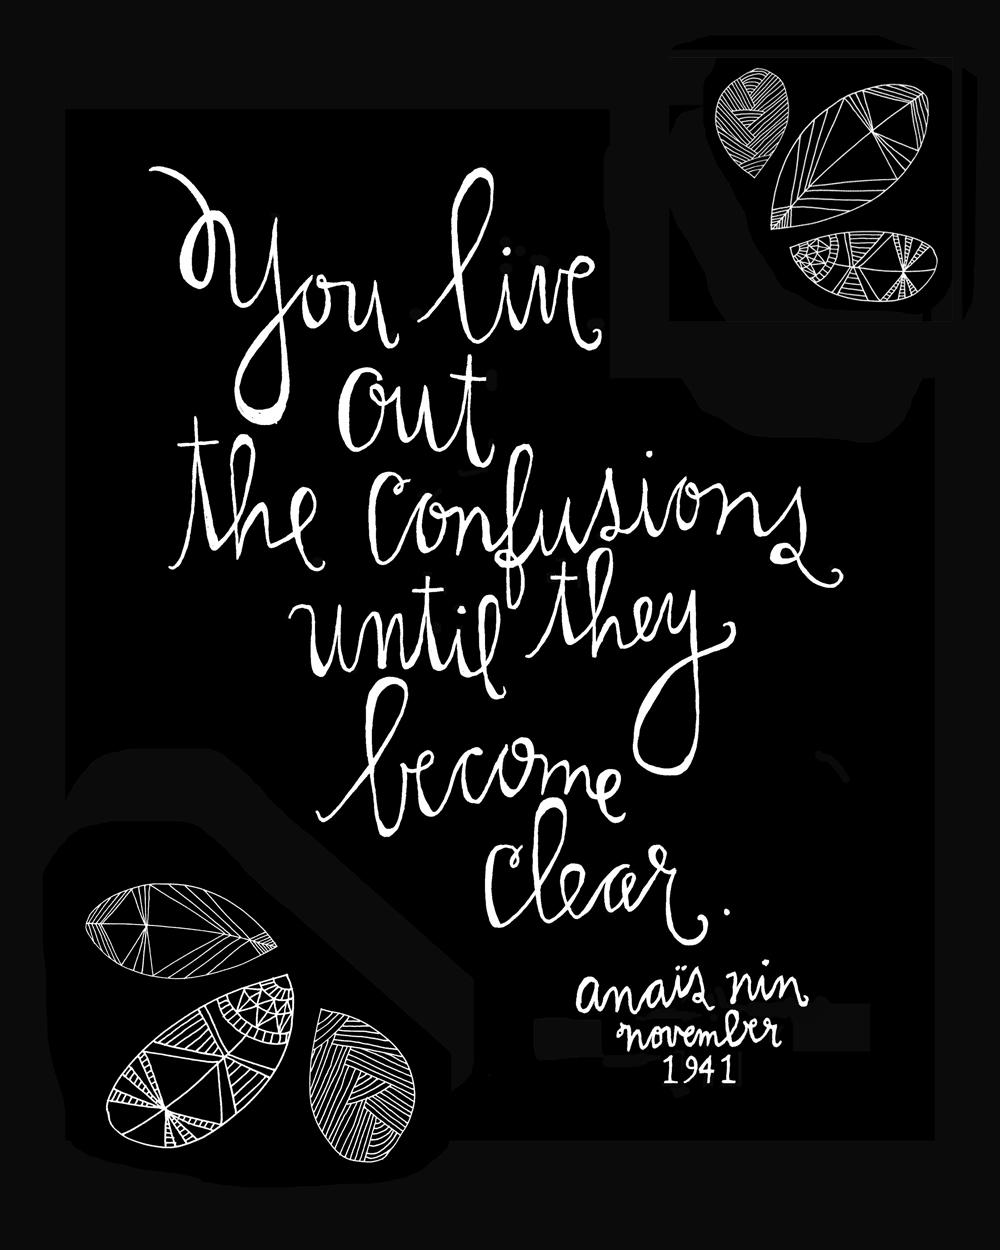 You live out the confusions until they become clear.